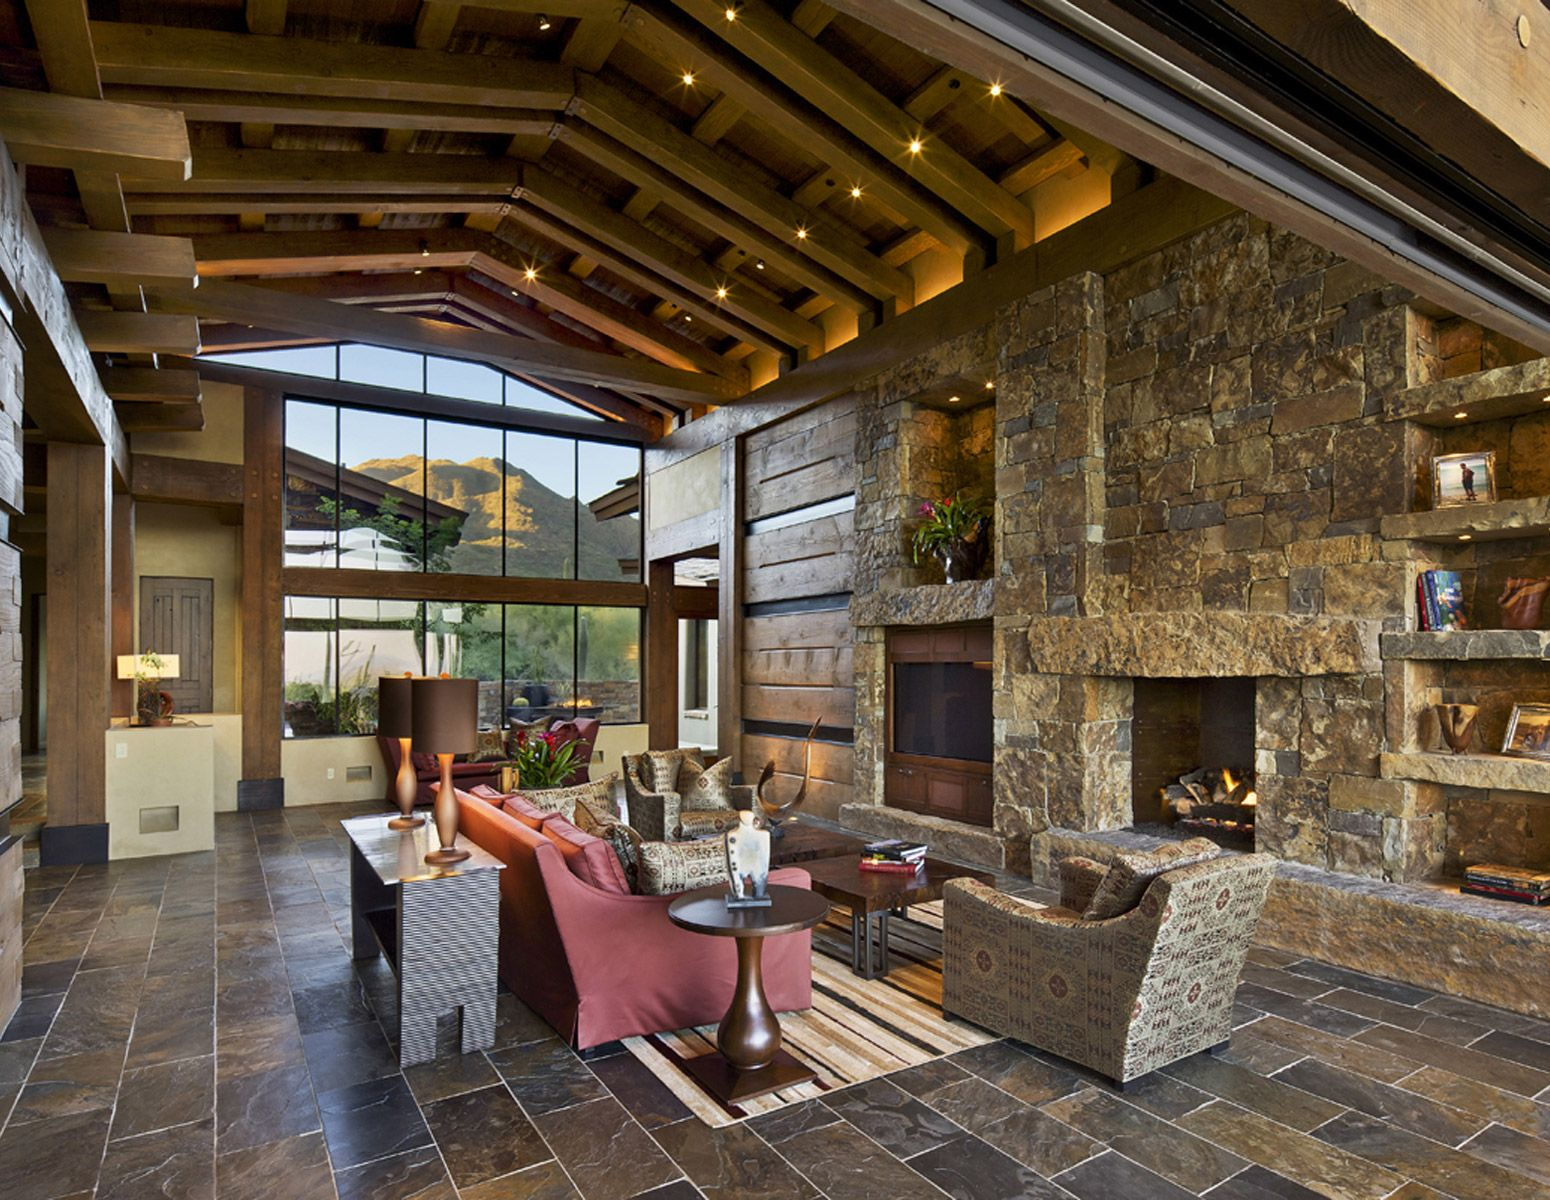 contemporary rustic modern furniture outdoor. Architecture, Elegant Yet Vintage Rustic Modern Homes Architecture Ideas : Amazing With Glass Windowed Wall And Fireplac. Contemporary Furniture Outdoor B